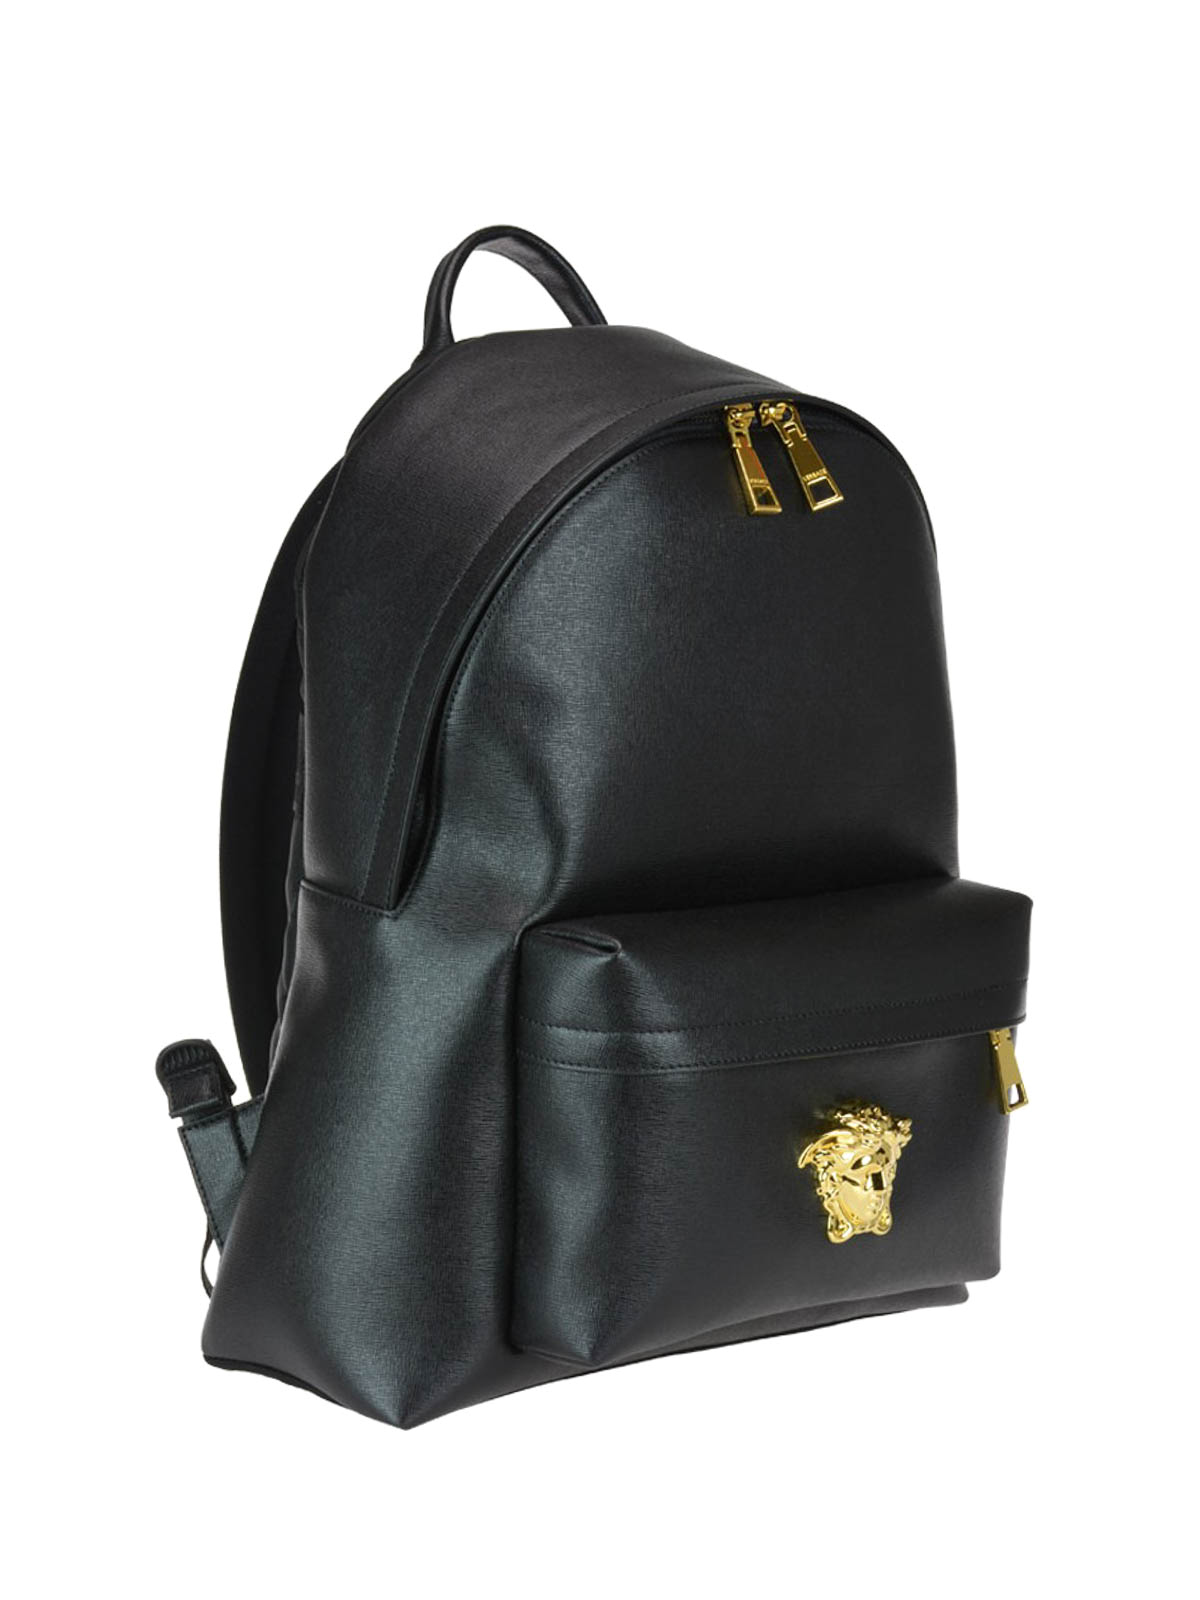 3b720a162b Versace - Palazzo black saffiano leather backpack - backpacks ...